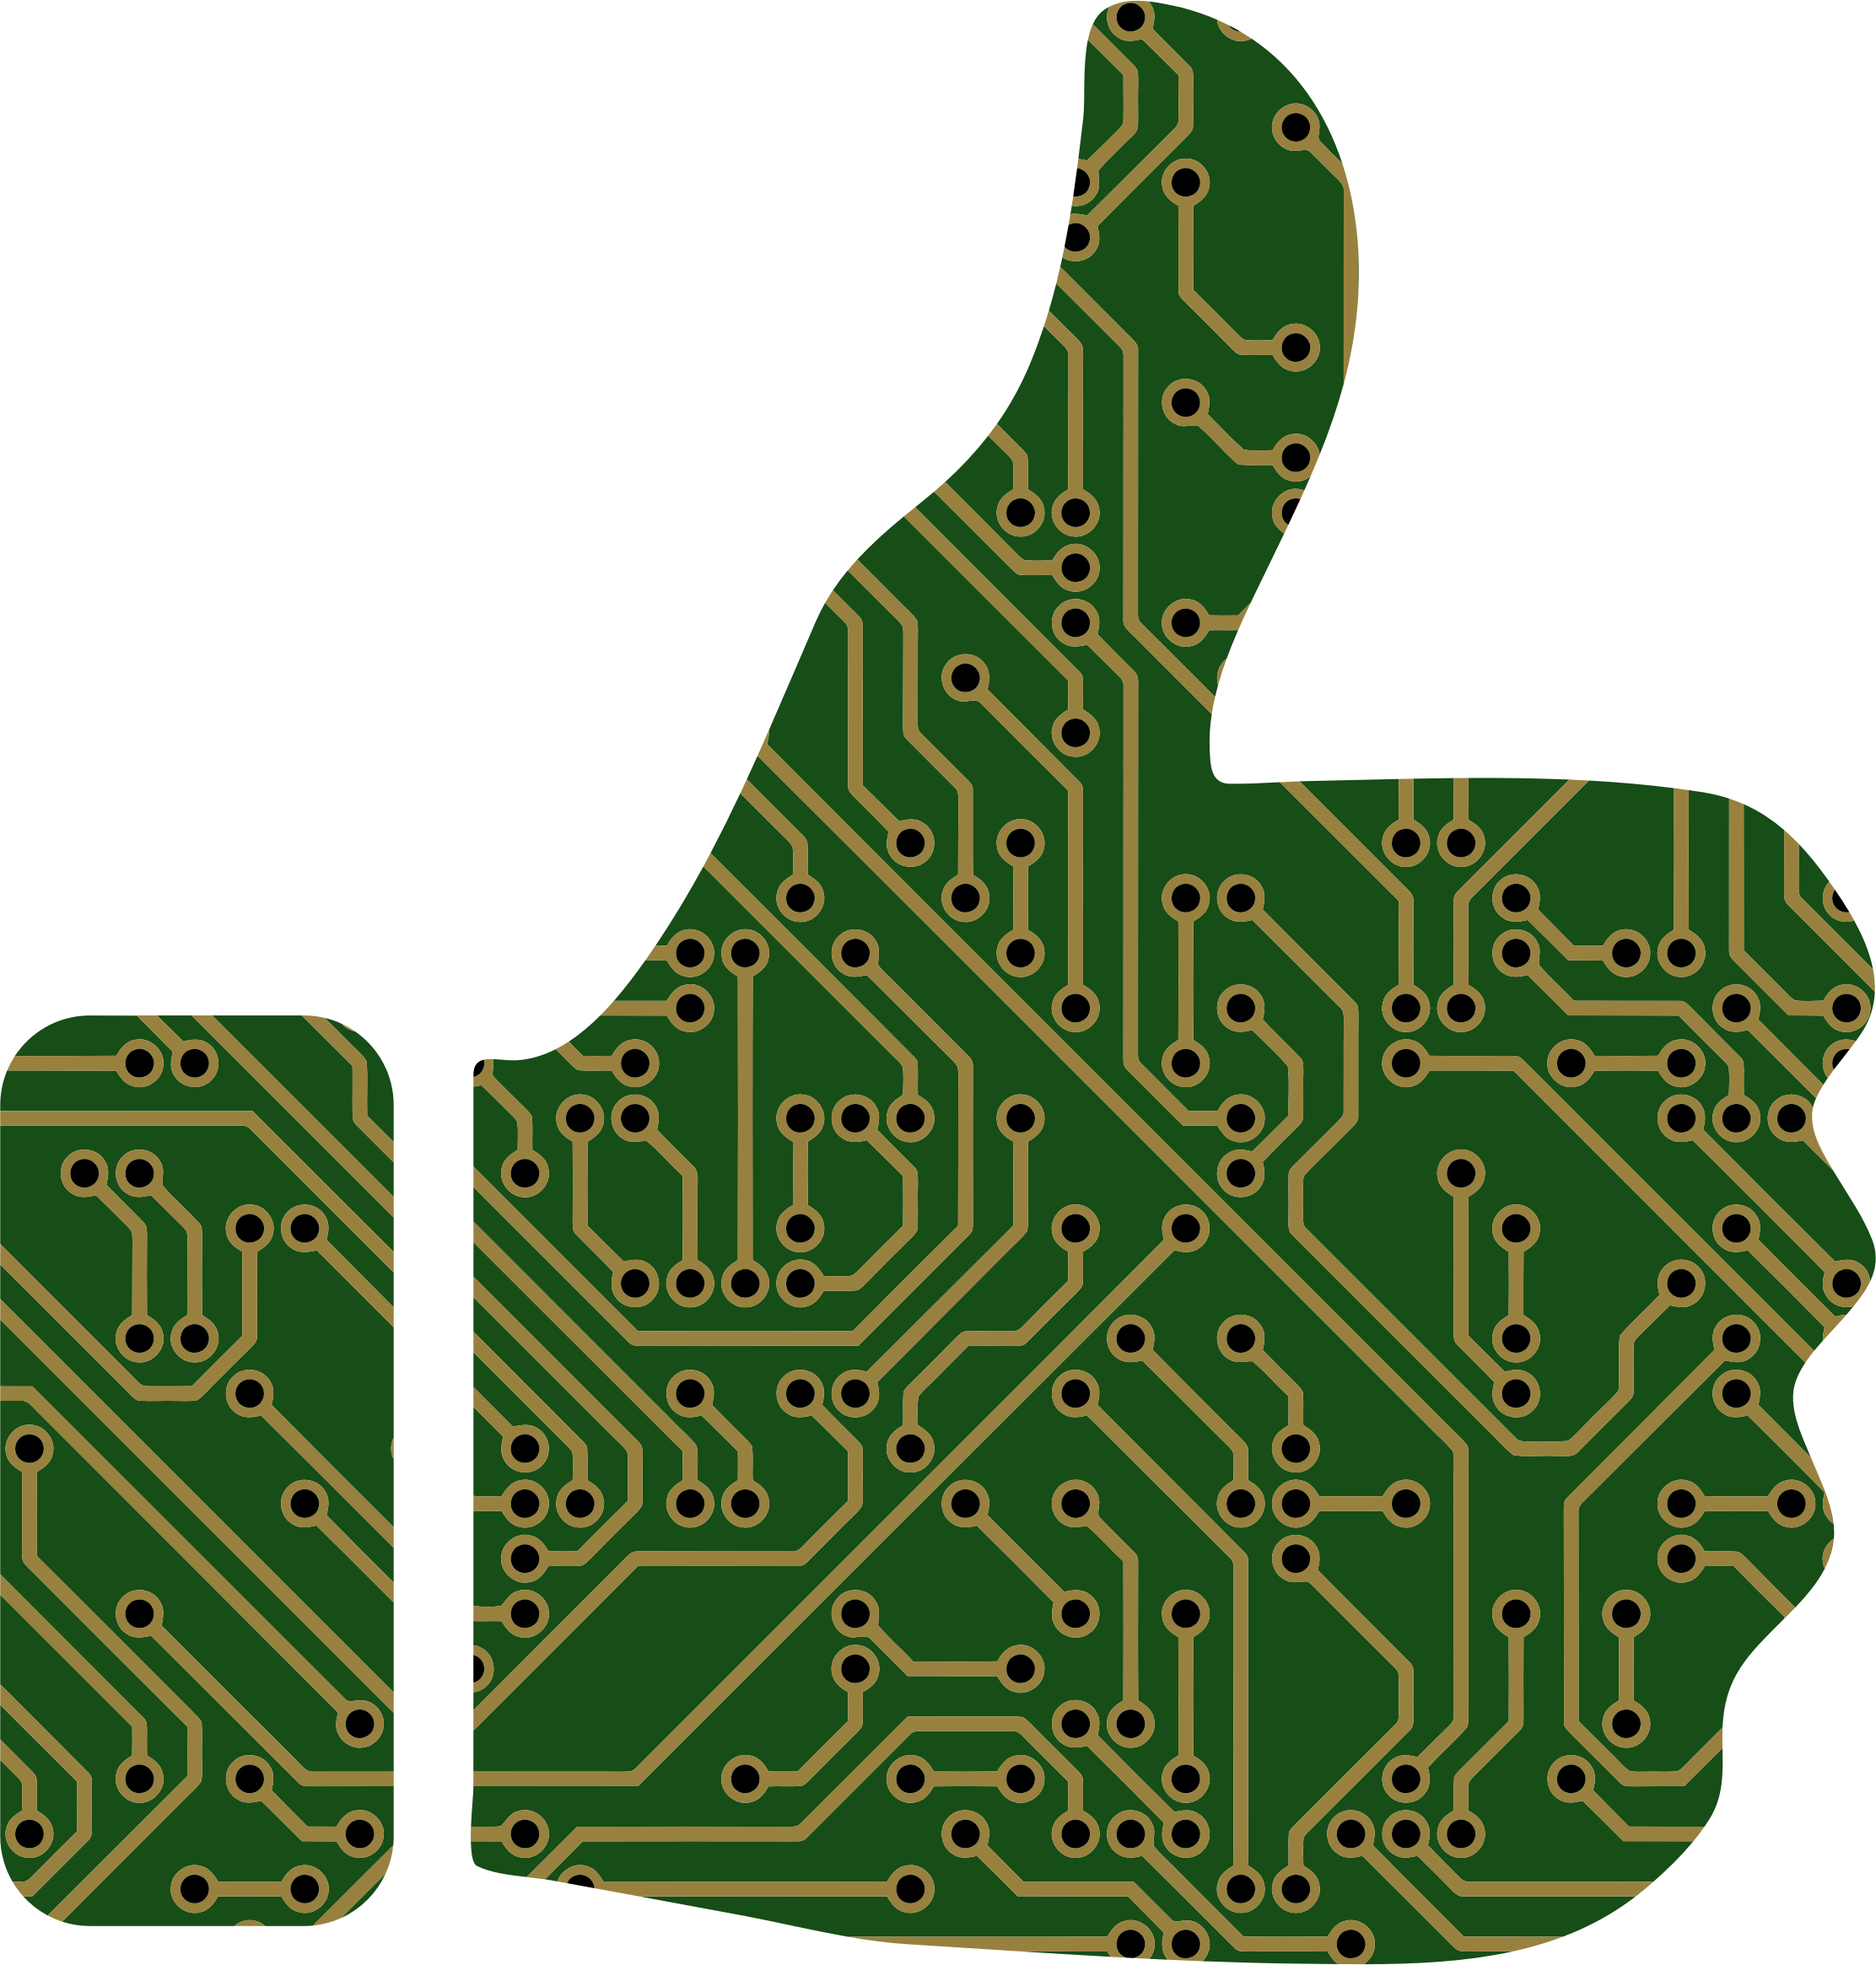 Thumbs Up Circuit Board by GDJ